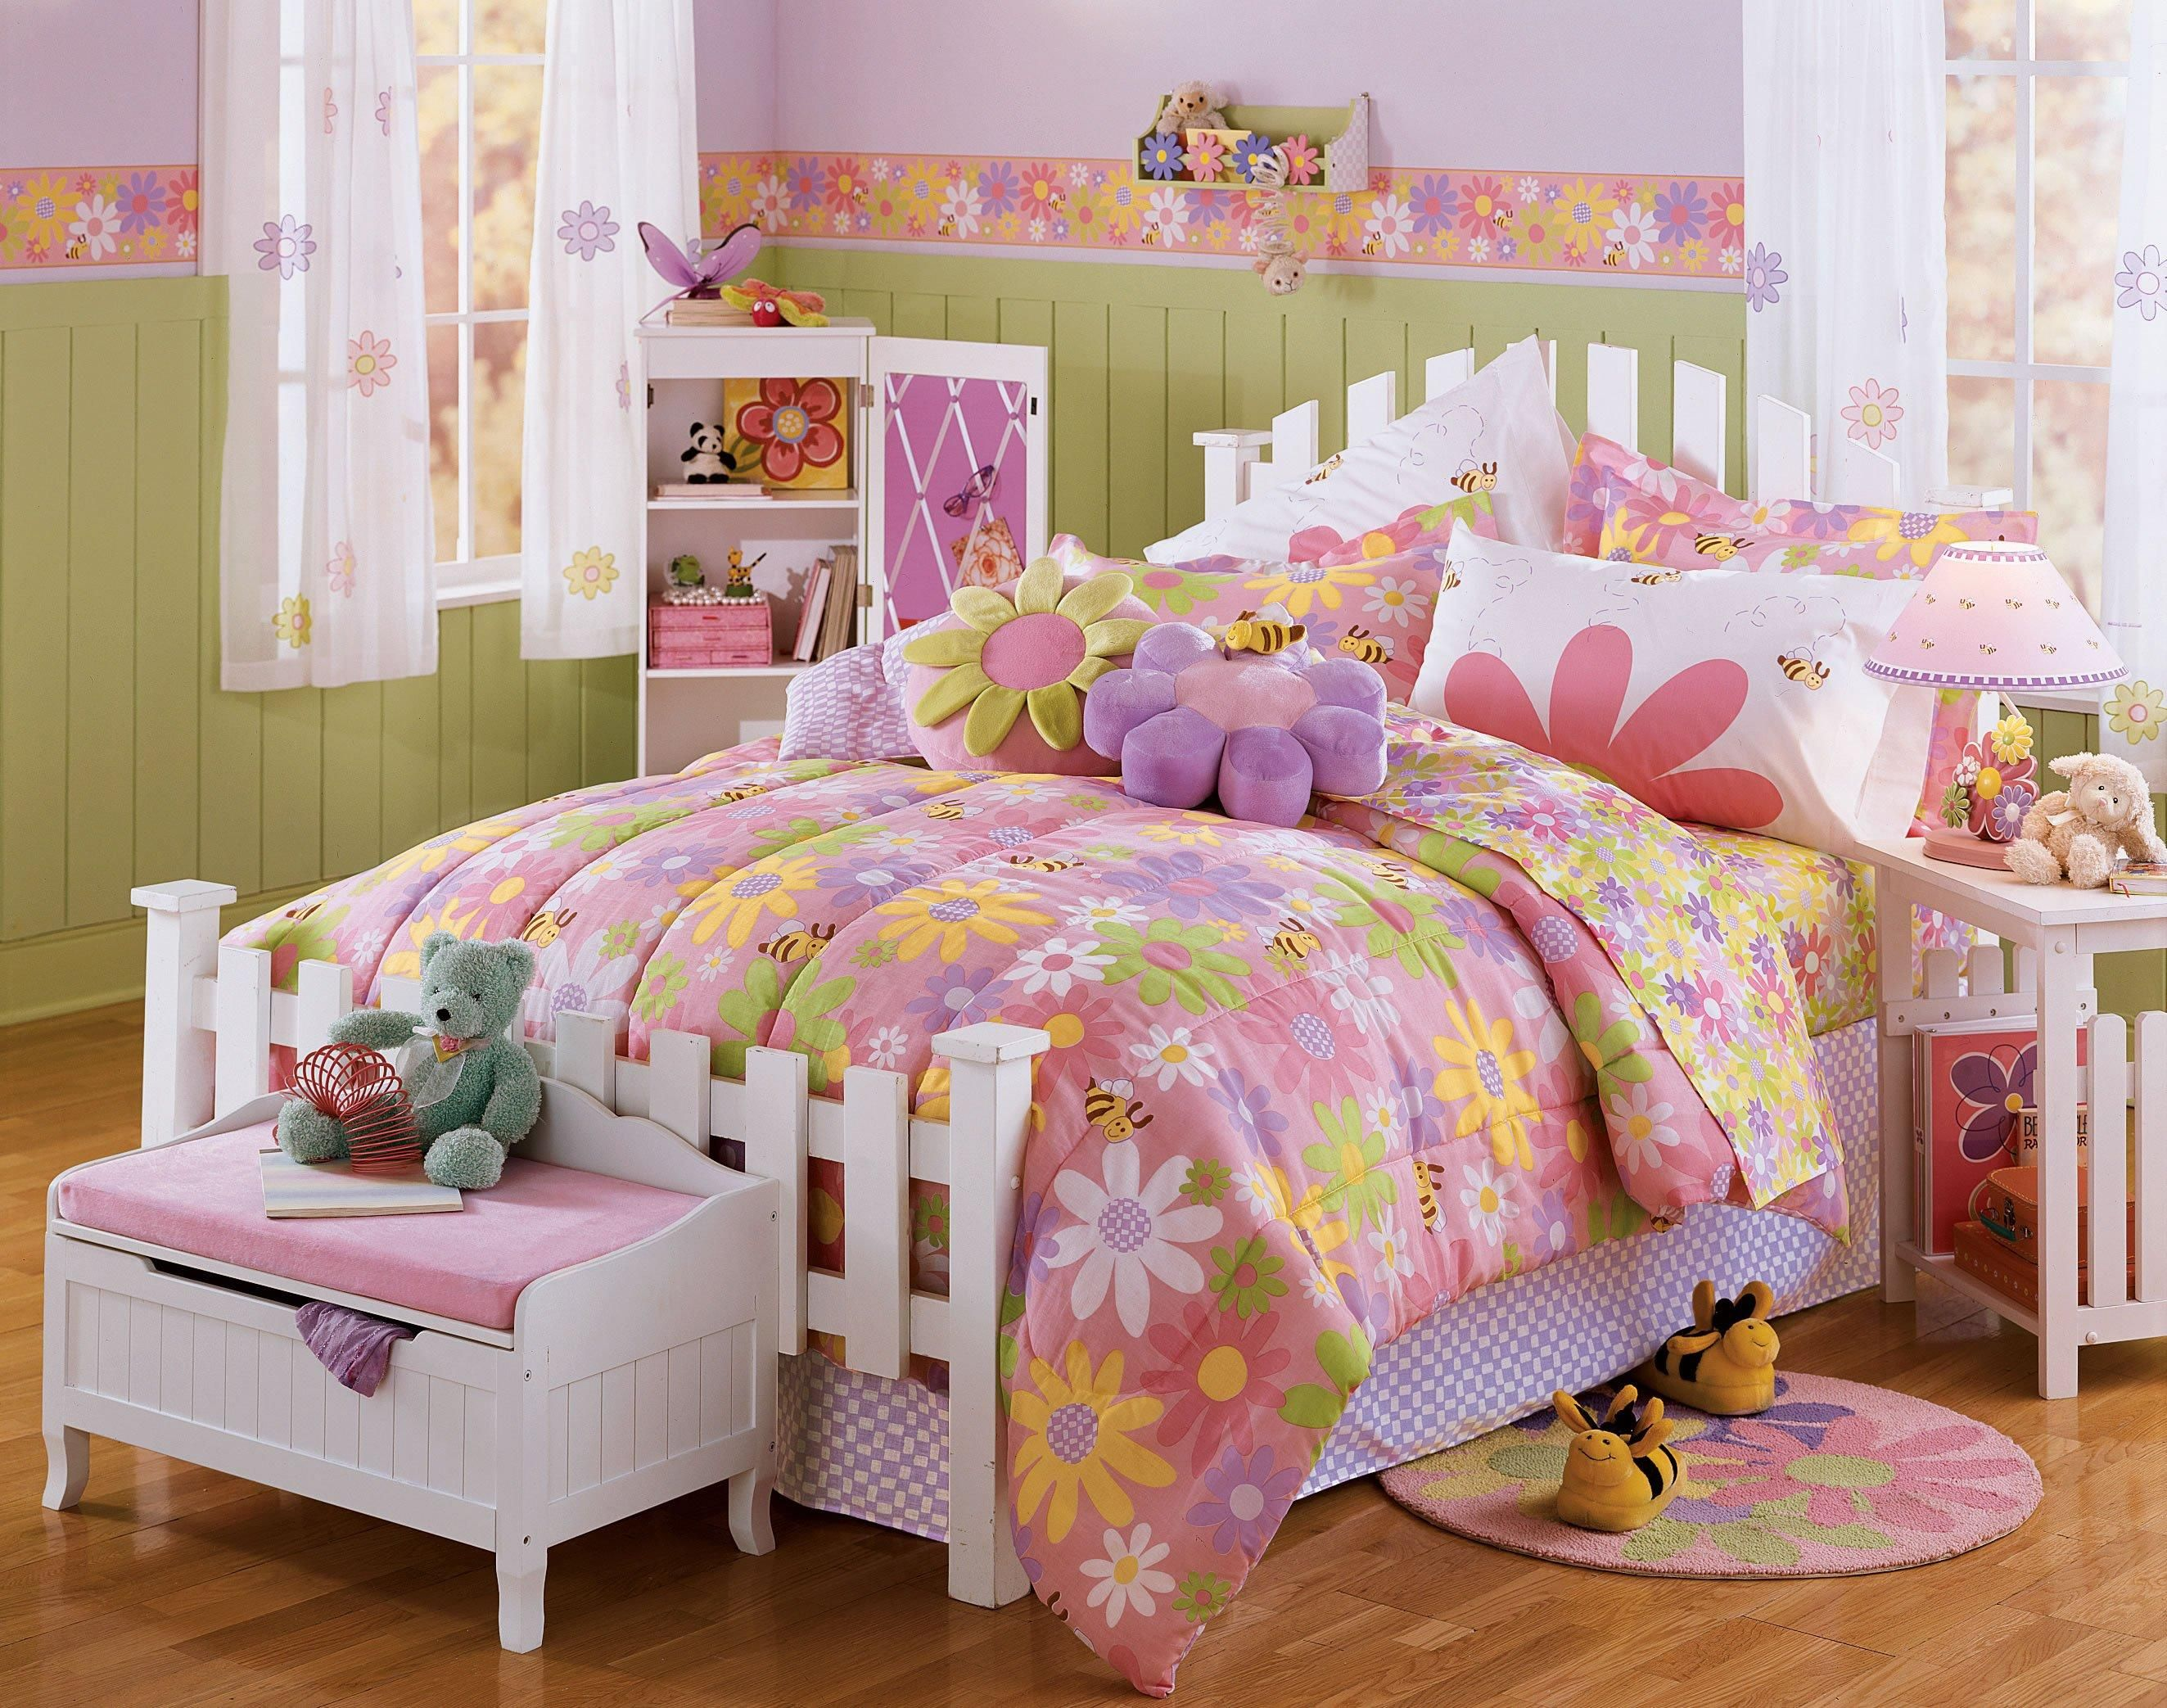 Bedroom designs for boys and girls - Pastel Green And Pink Bedroom Http Rilane Com Decorating Ideas Little Girl Bedroomskid